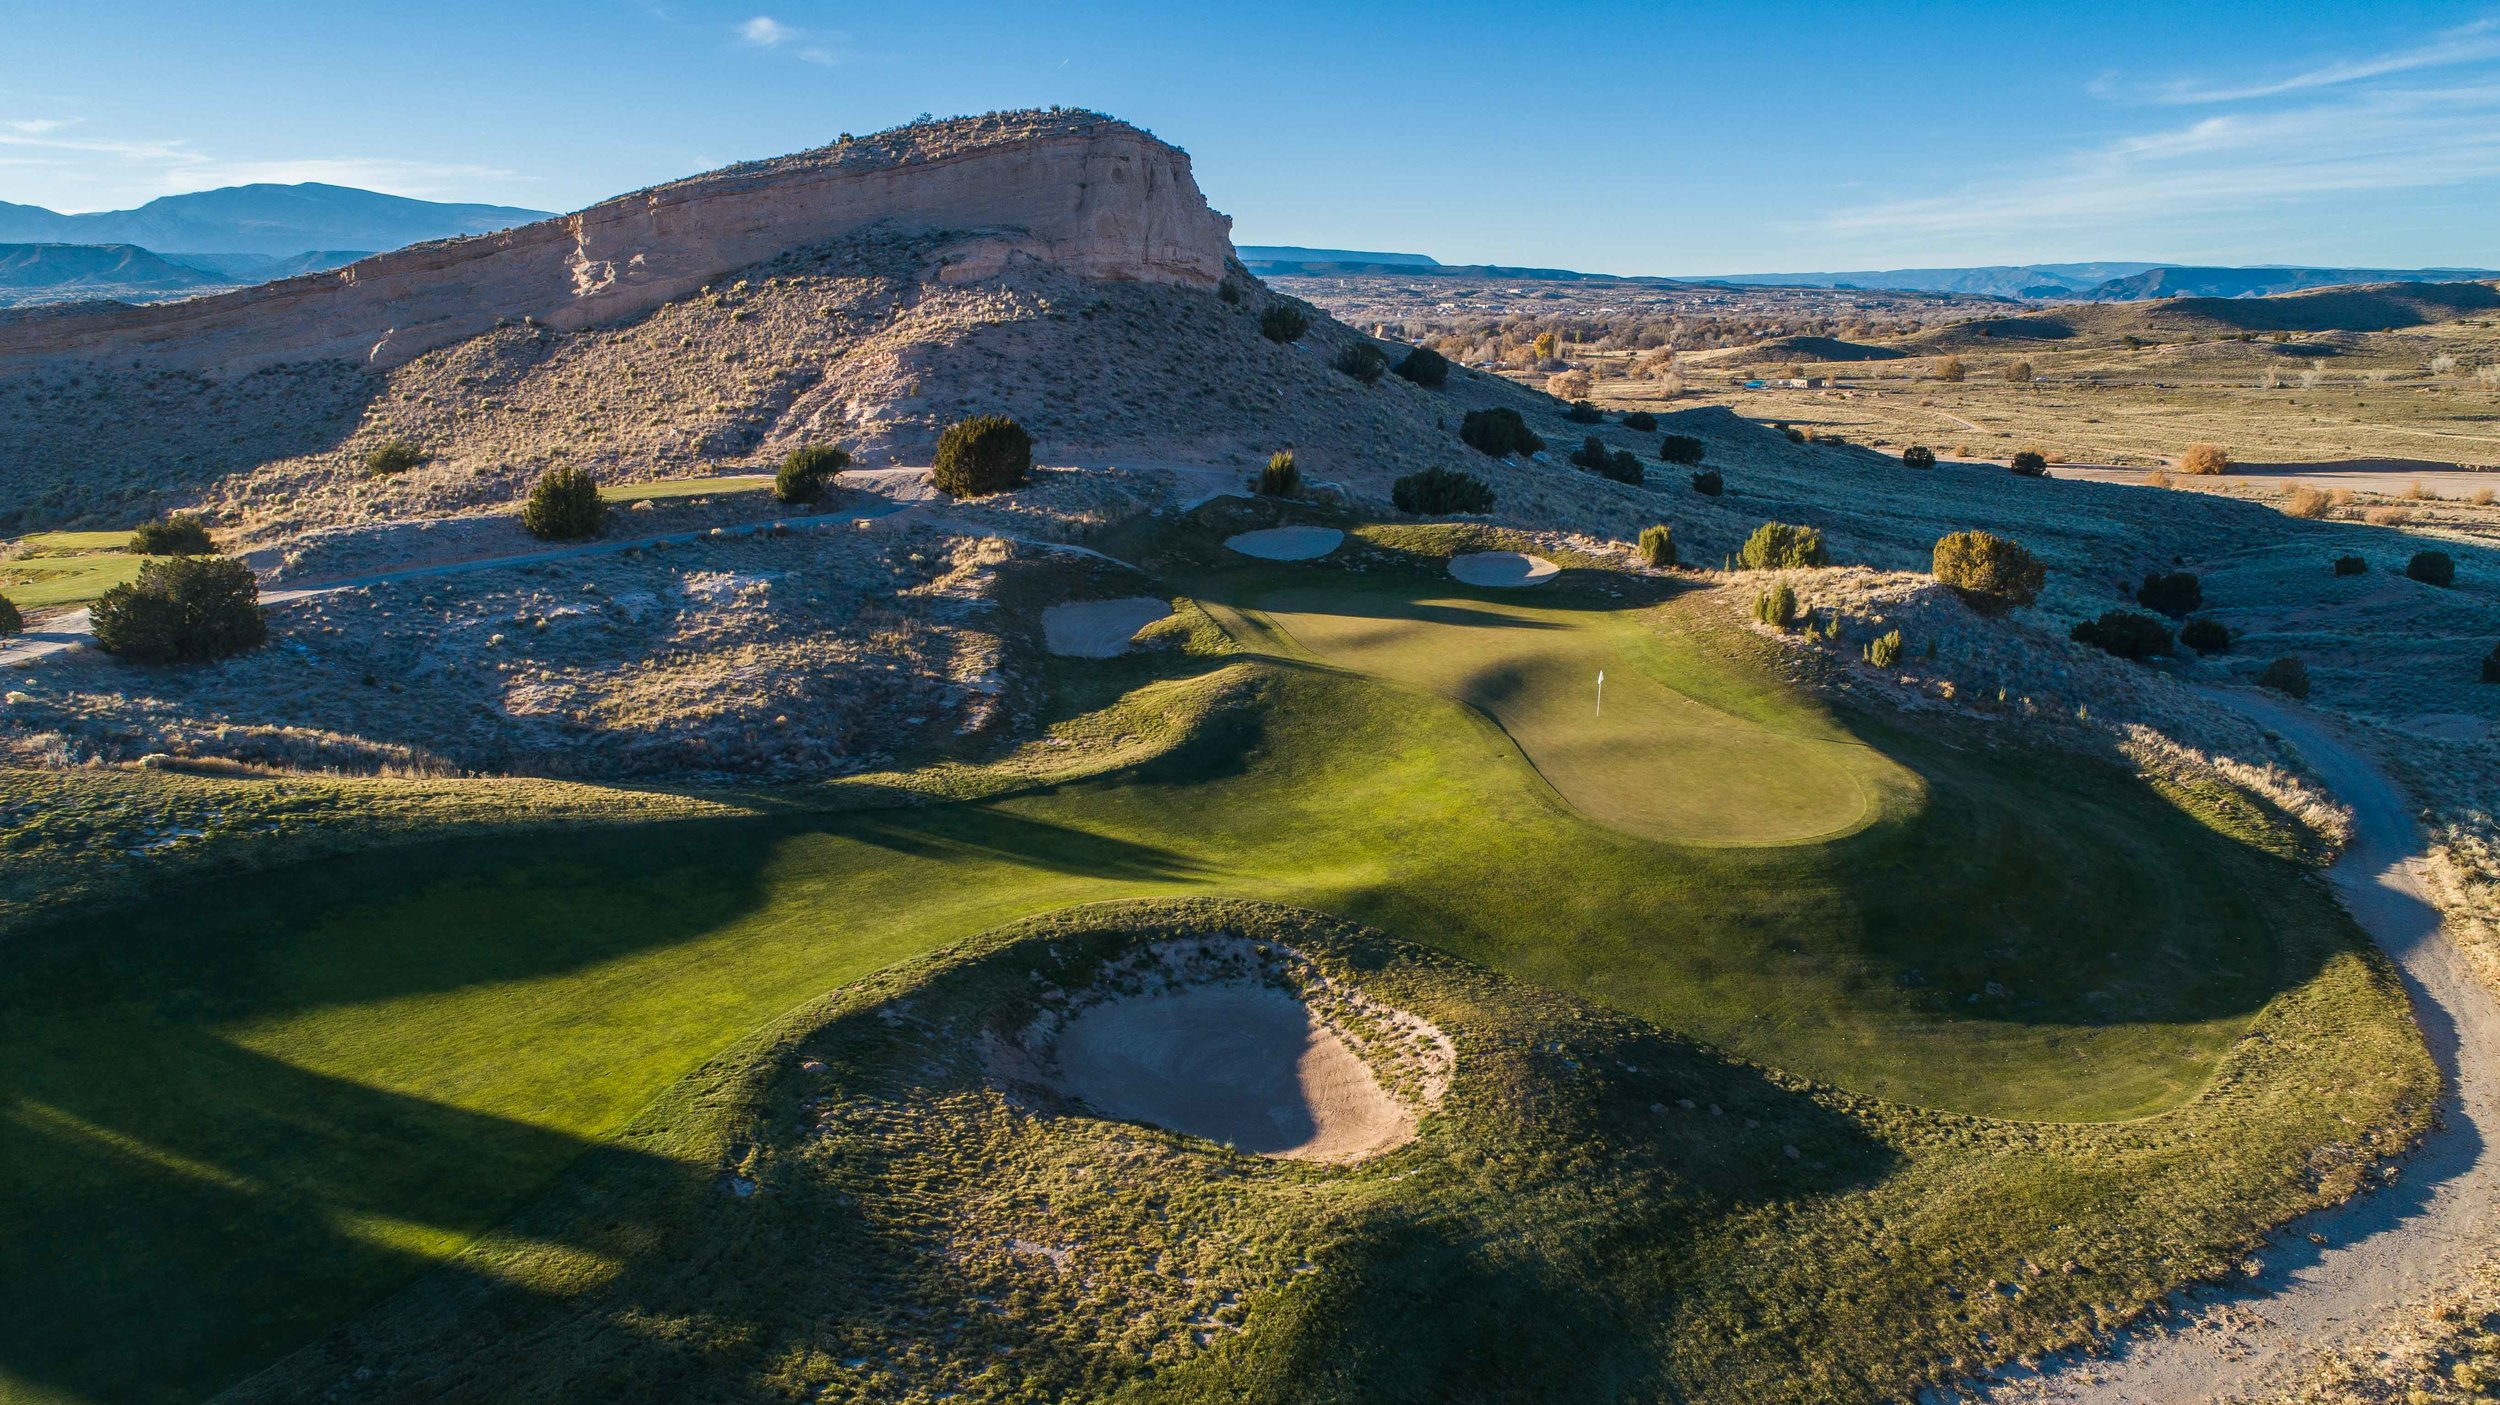 The 7th hole at Black Mesa is a fun short par 4. Just look at that green.